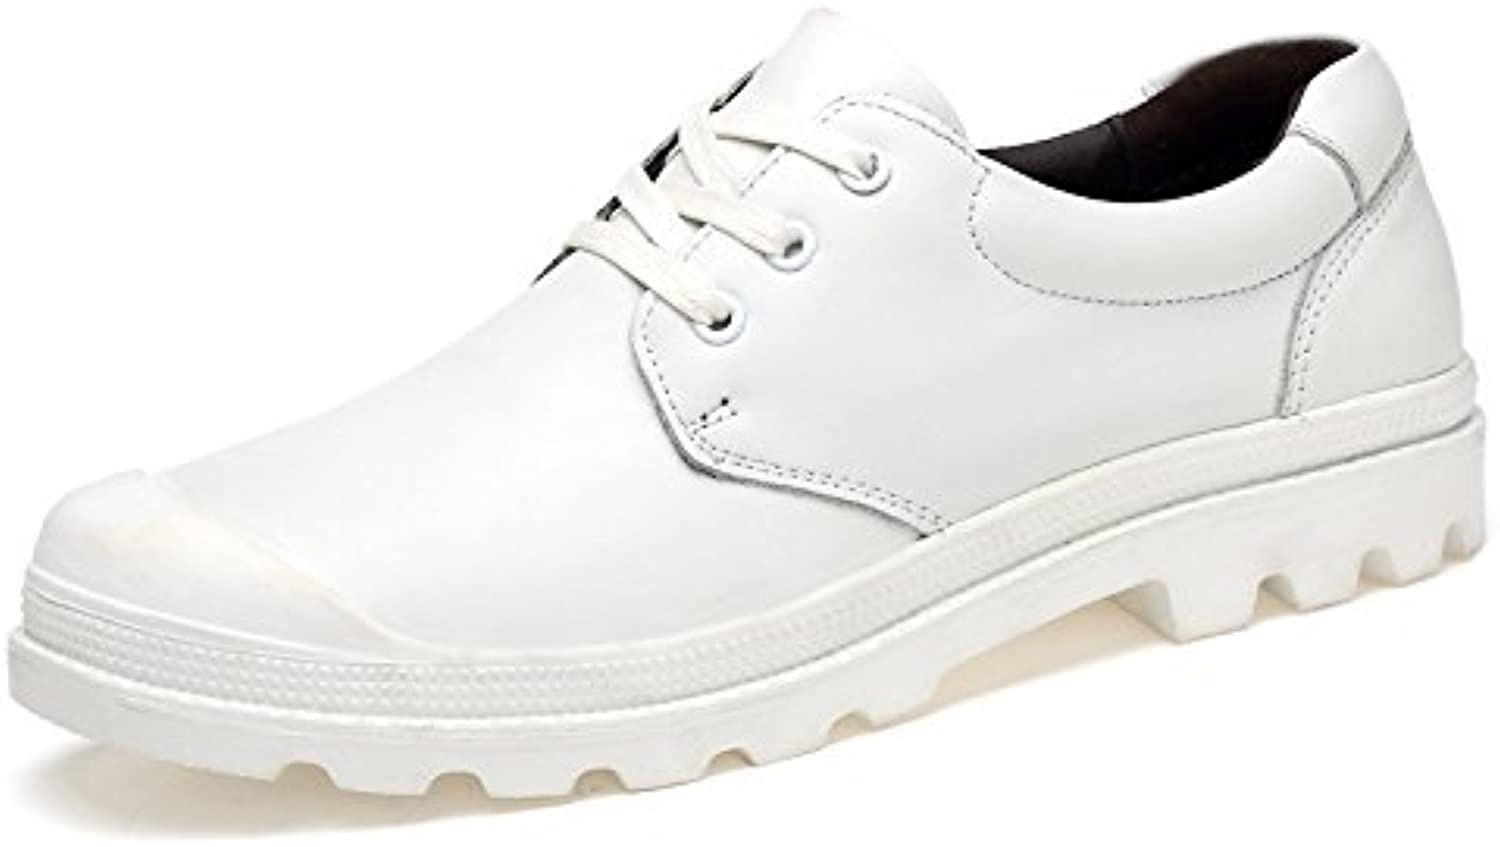 LOVDRAM Men'S shoes Spring And Autumn Casual Business shoes With Comfortable Top Layer Leather shoes Handmade Large Size Men'S shoes